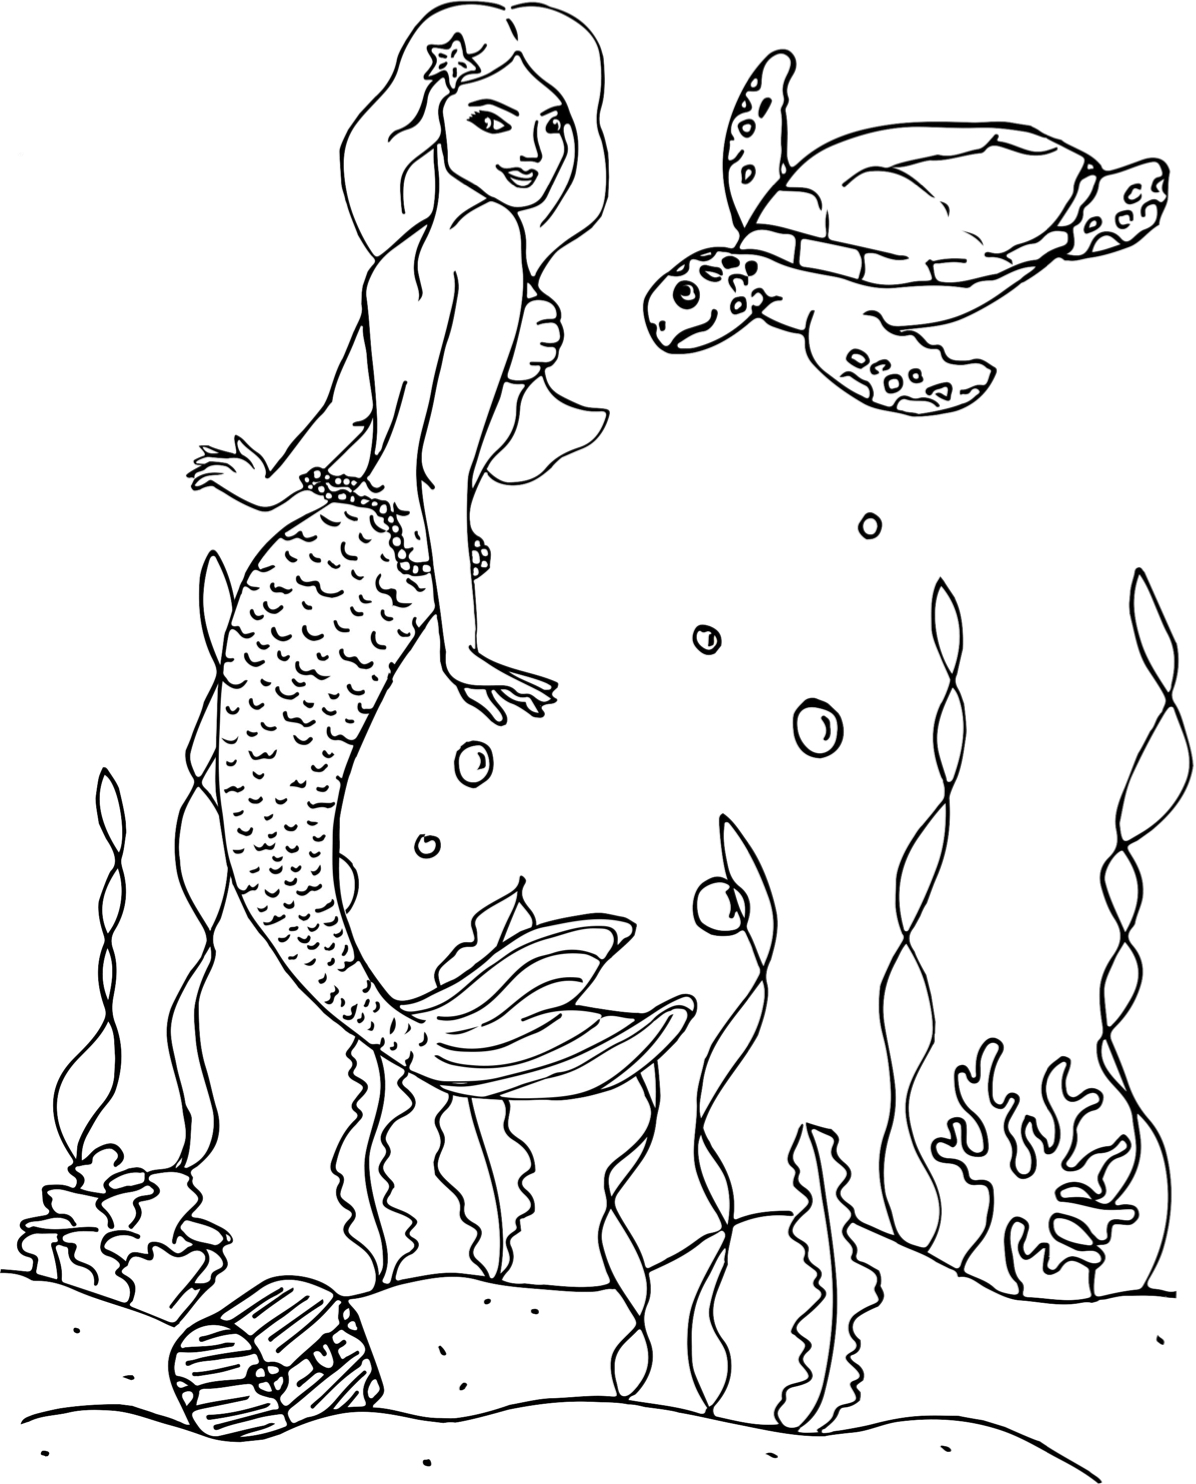 Mermaid with Sea Turtle and Treasure Chest Coloring Page